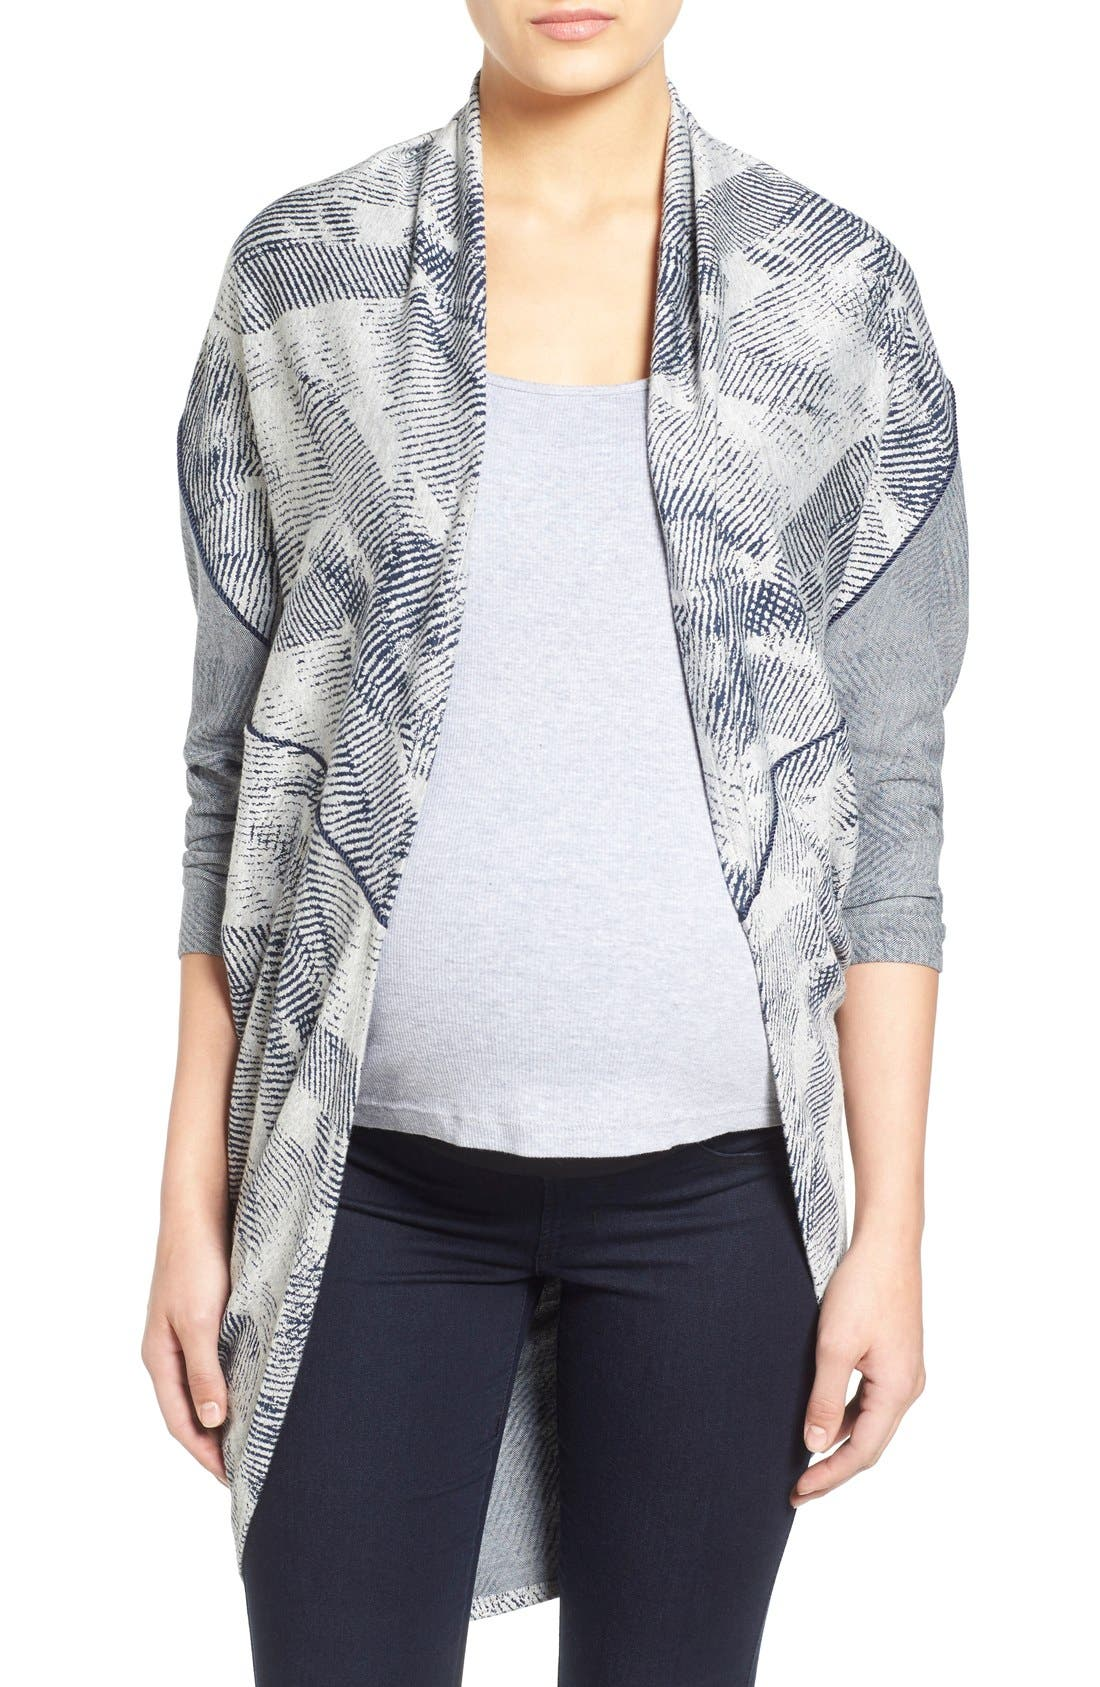 'Meesha' Open Front Maternity Cardigan,                             Main thumbnail 1, color,                             HEATHER GREY/NAVY